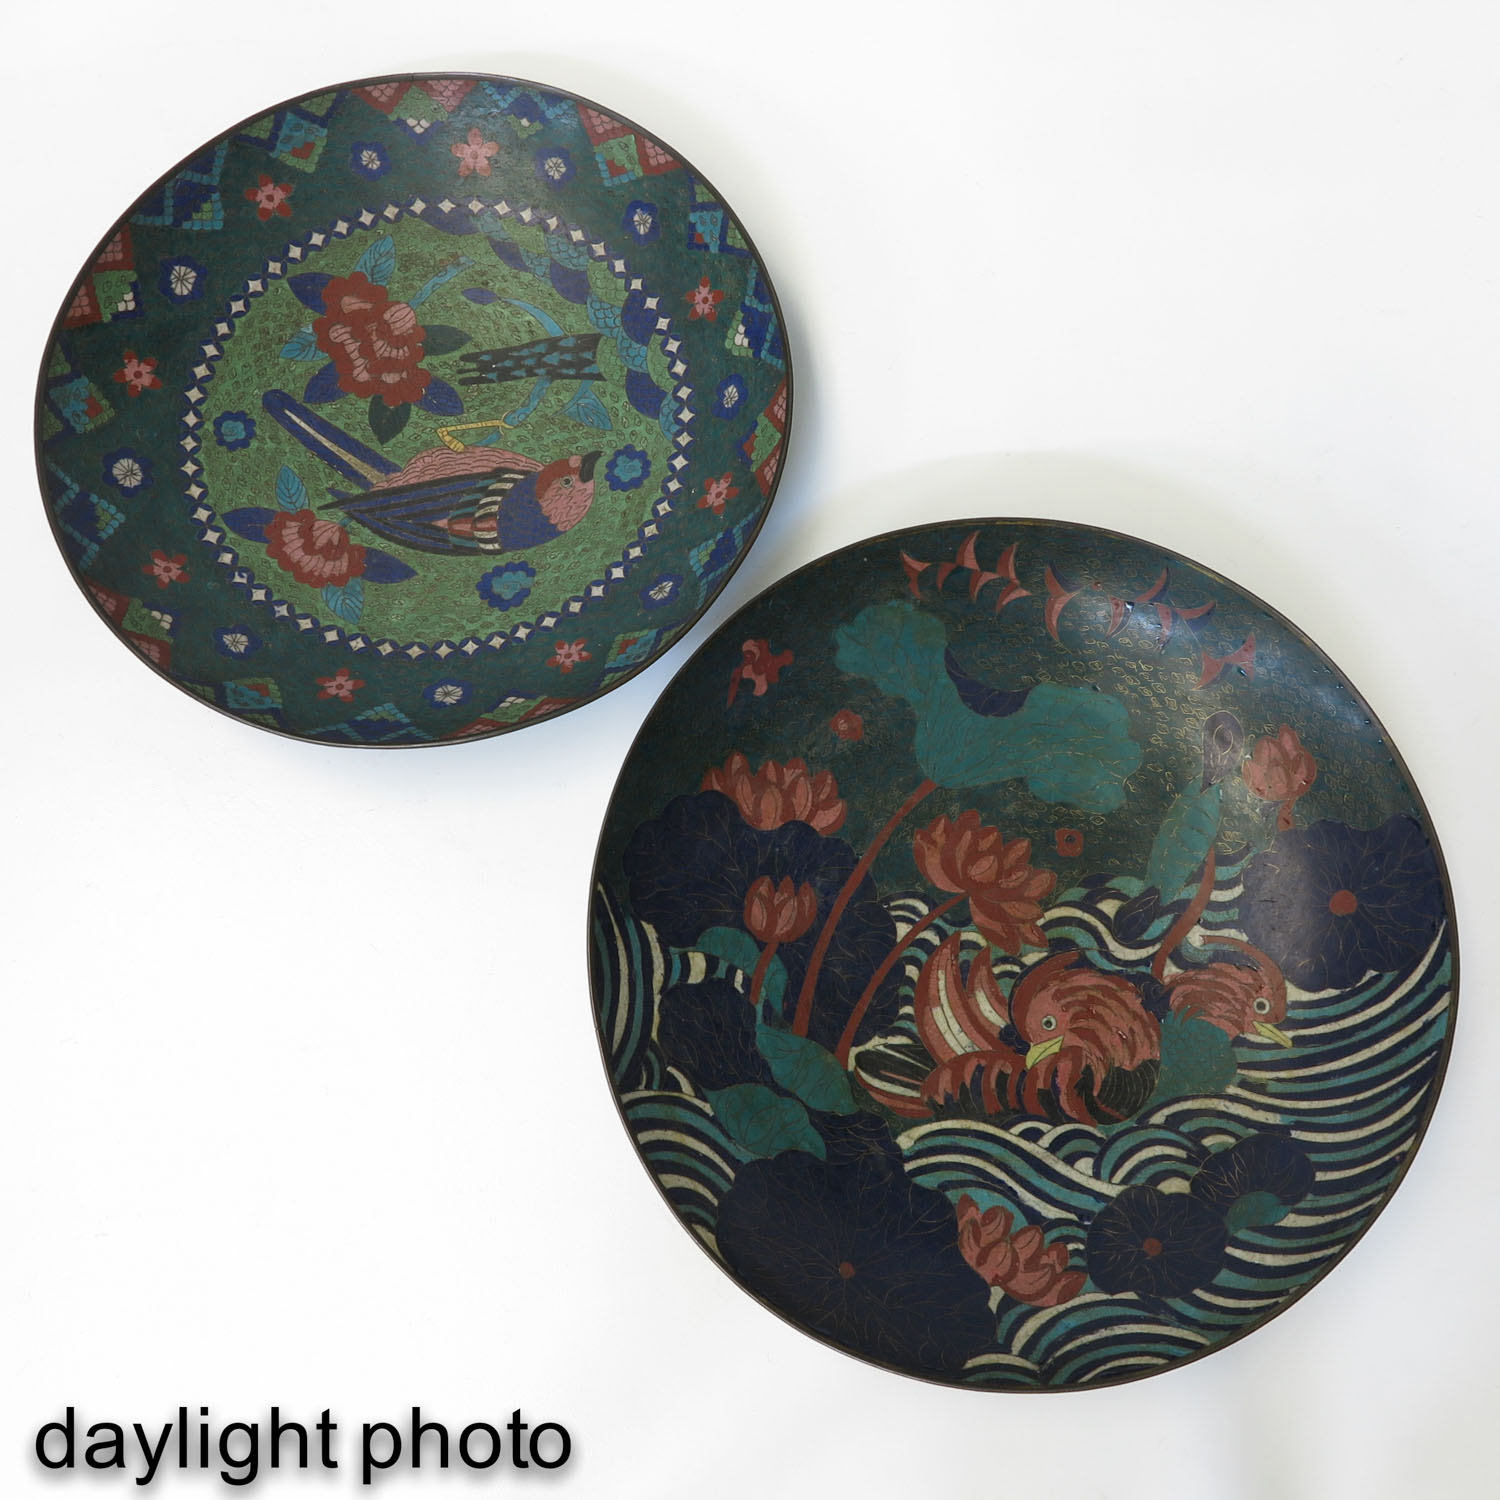 A Pair of Cloisonne Chargers - Image 7 of 10